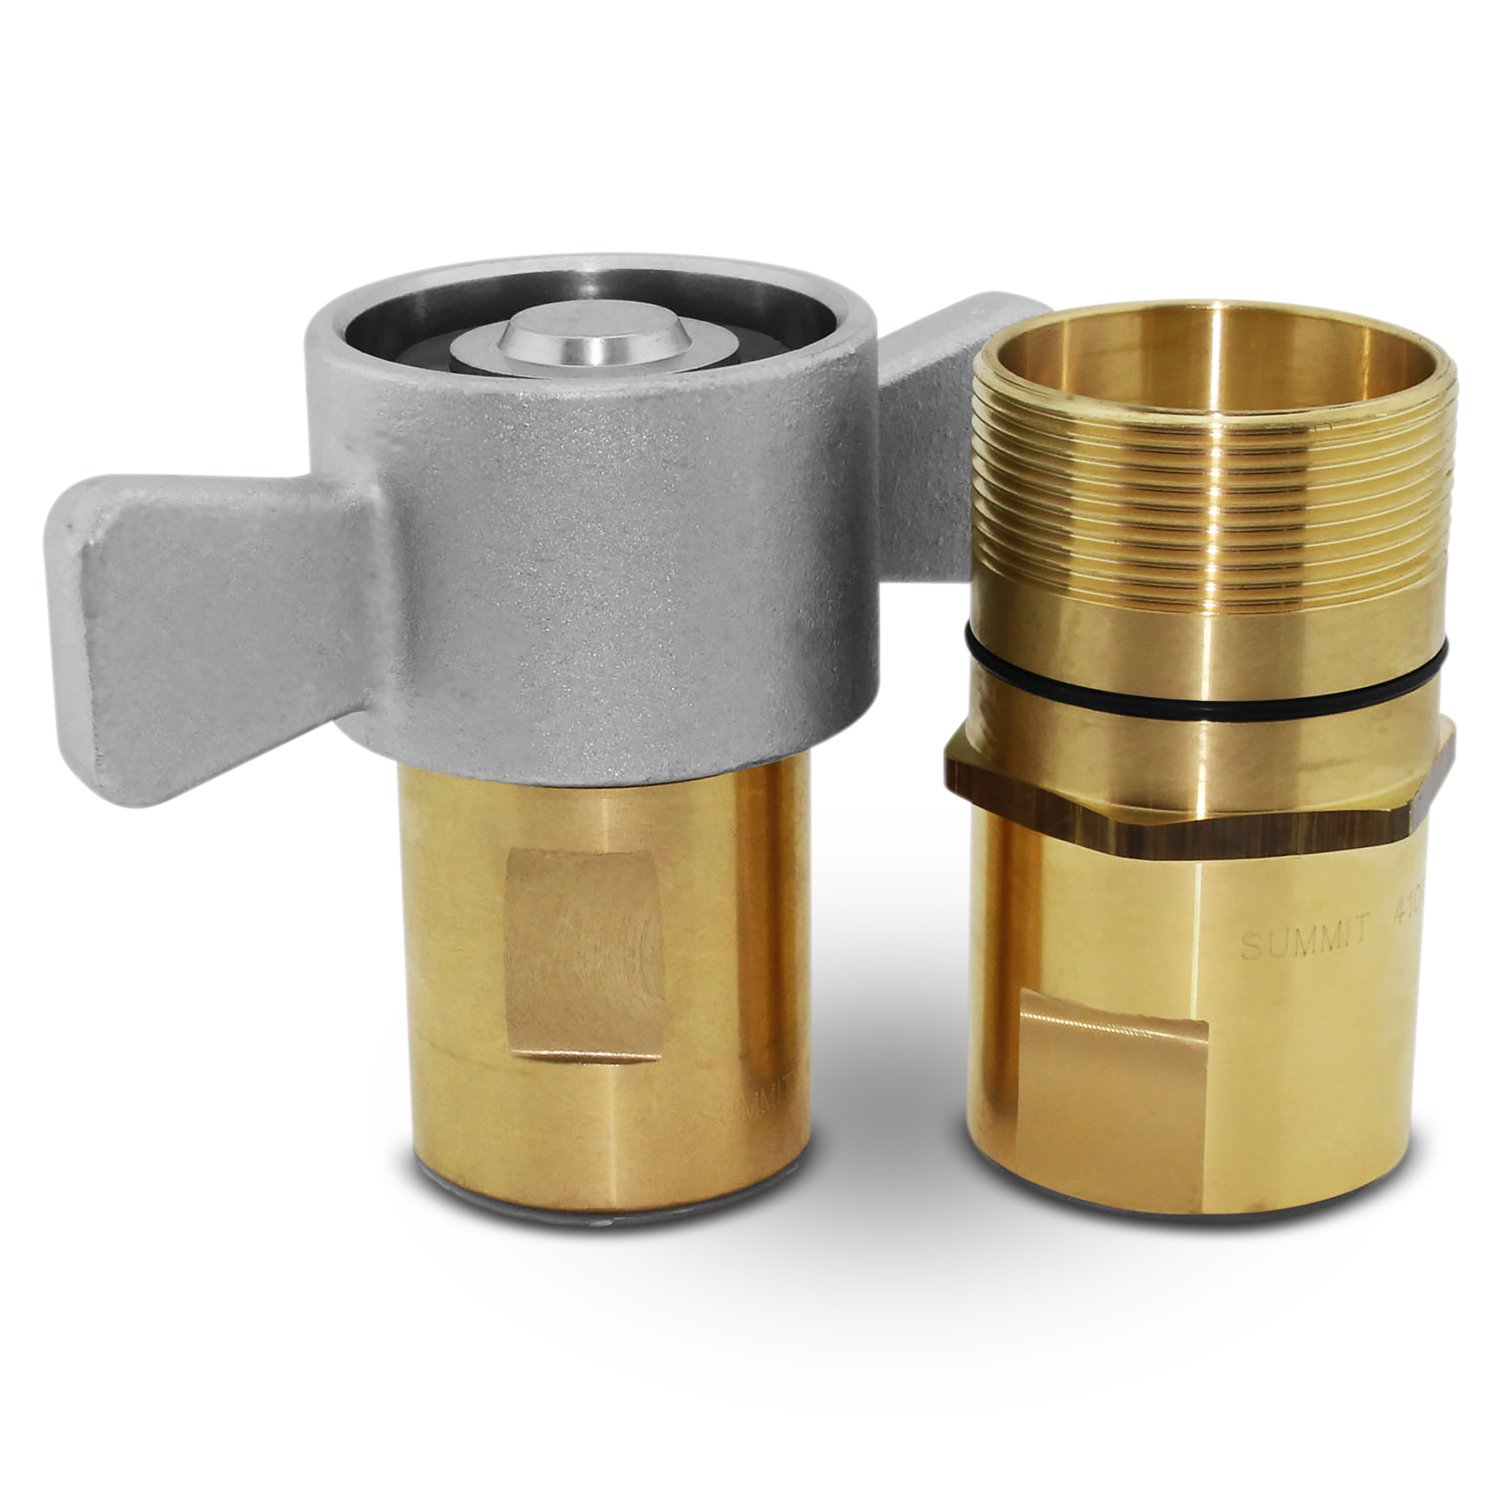 1-1/4'' NPT Wet-Line Wing Nut Hydraulic Quick Disconnect Coupler/Coupling Set